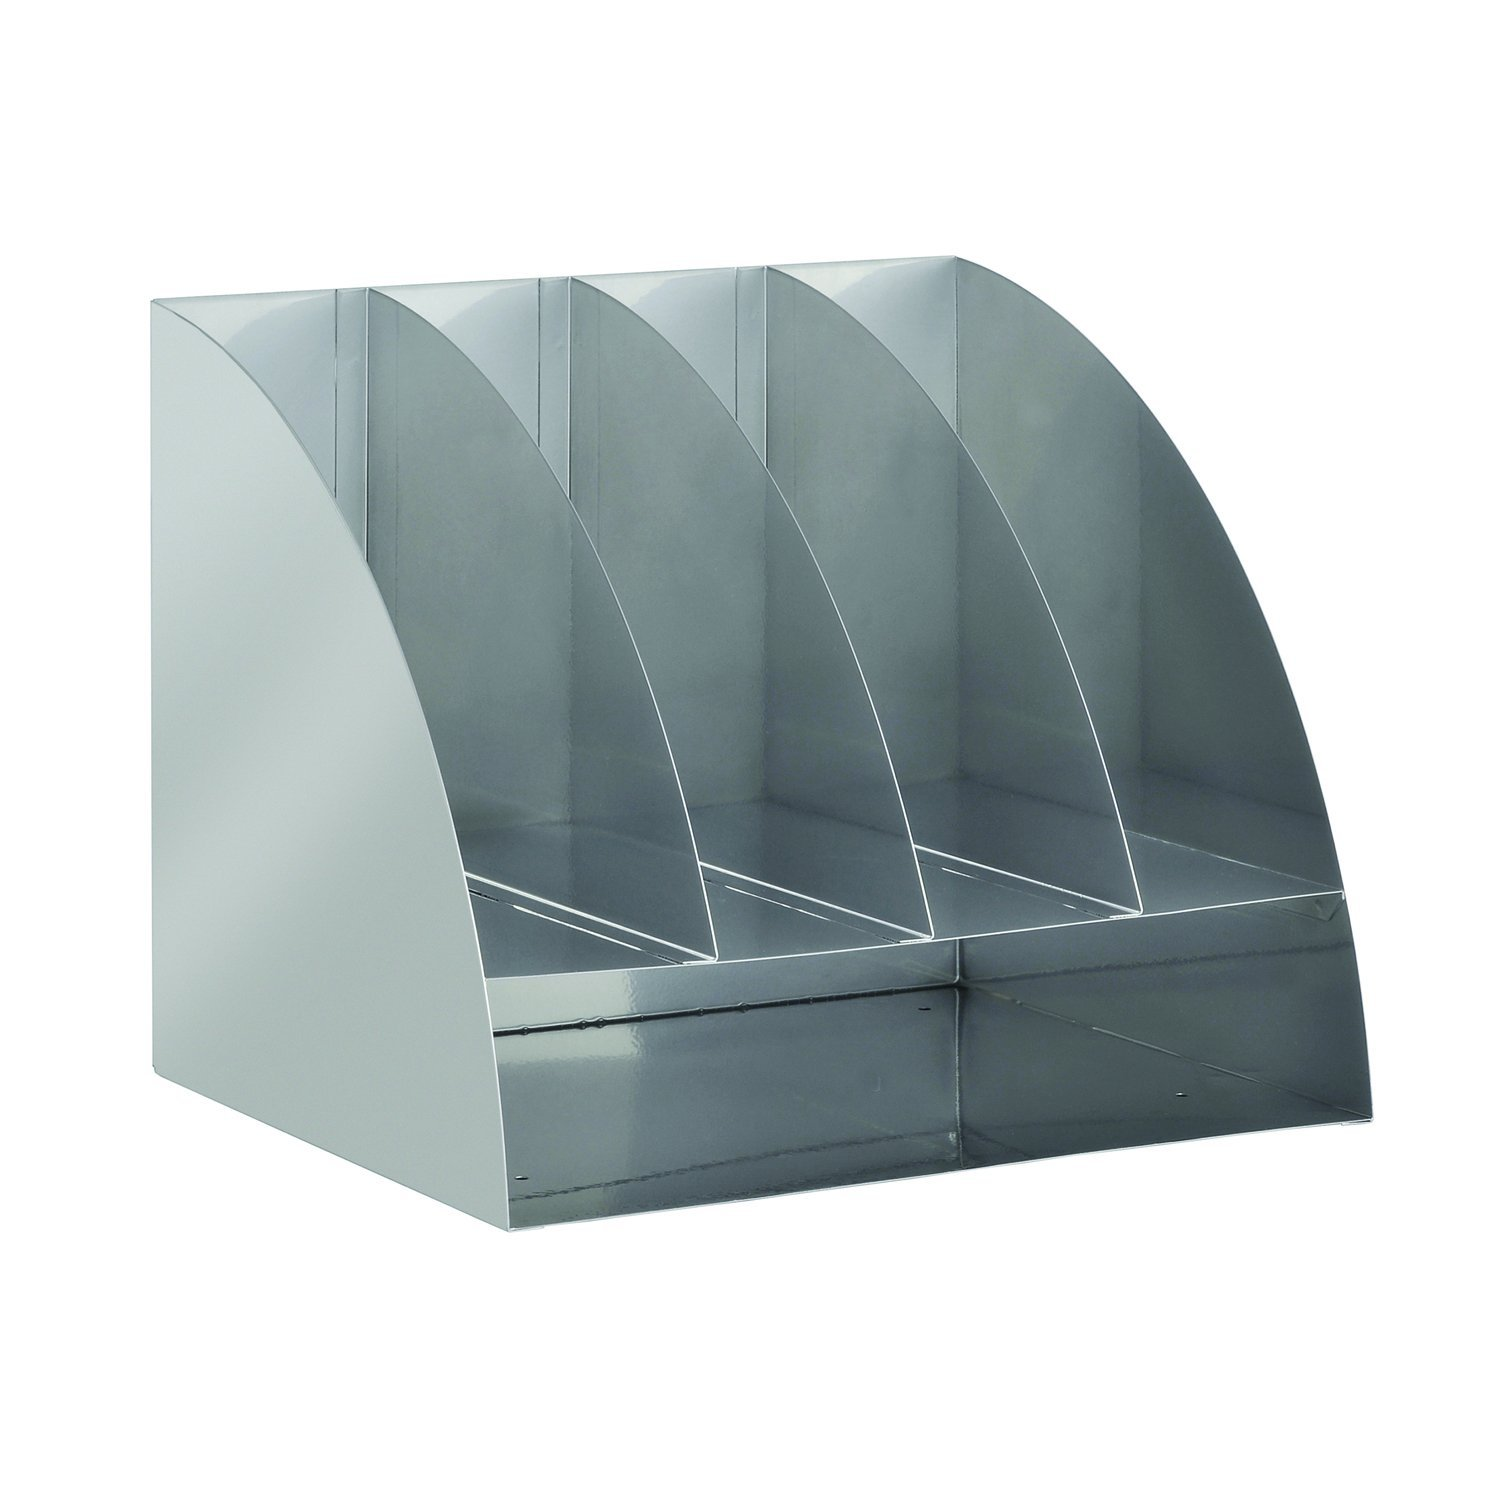 STEELMASTER Steel 11 x 13 x 11 Inches, 4-Way Corner Organizer, Silver (264C10050) MMF Industries